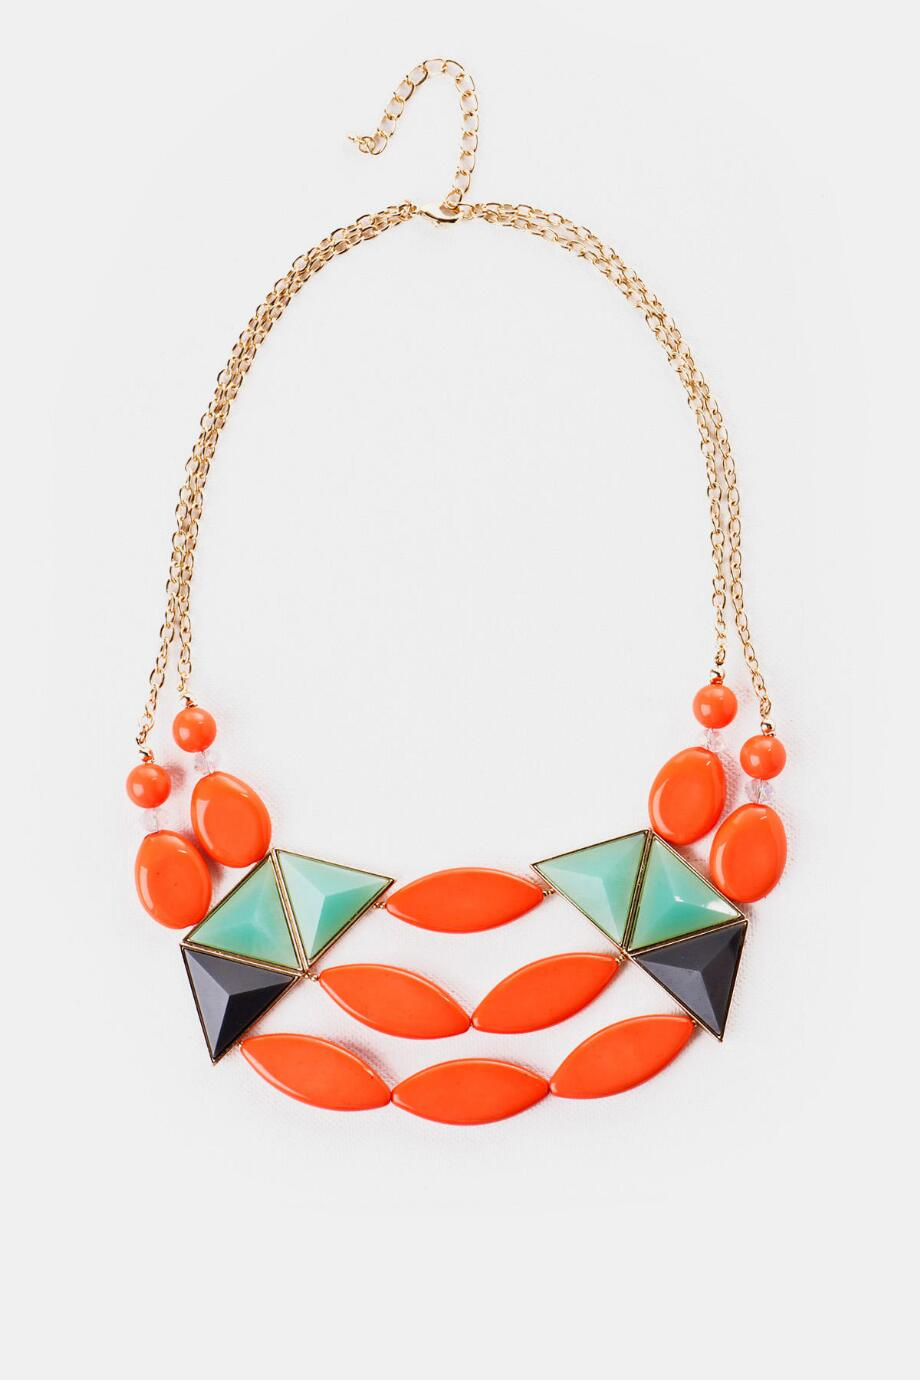 Halong Bay Crescent Necklace in Coral